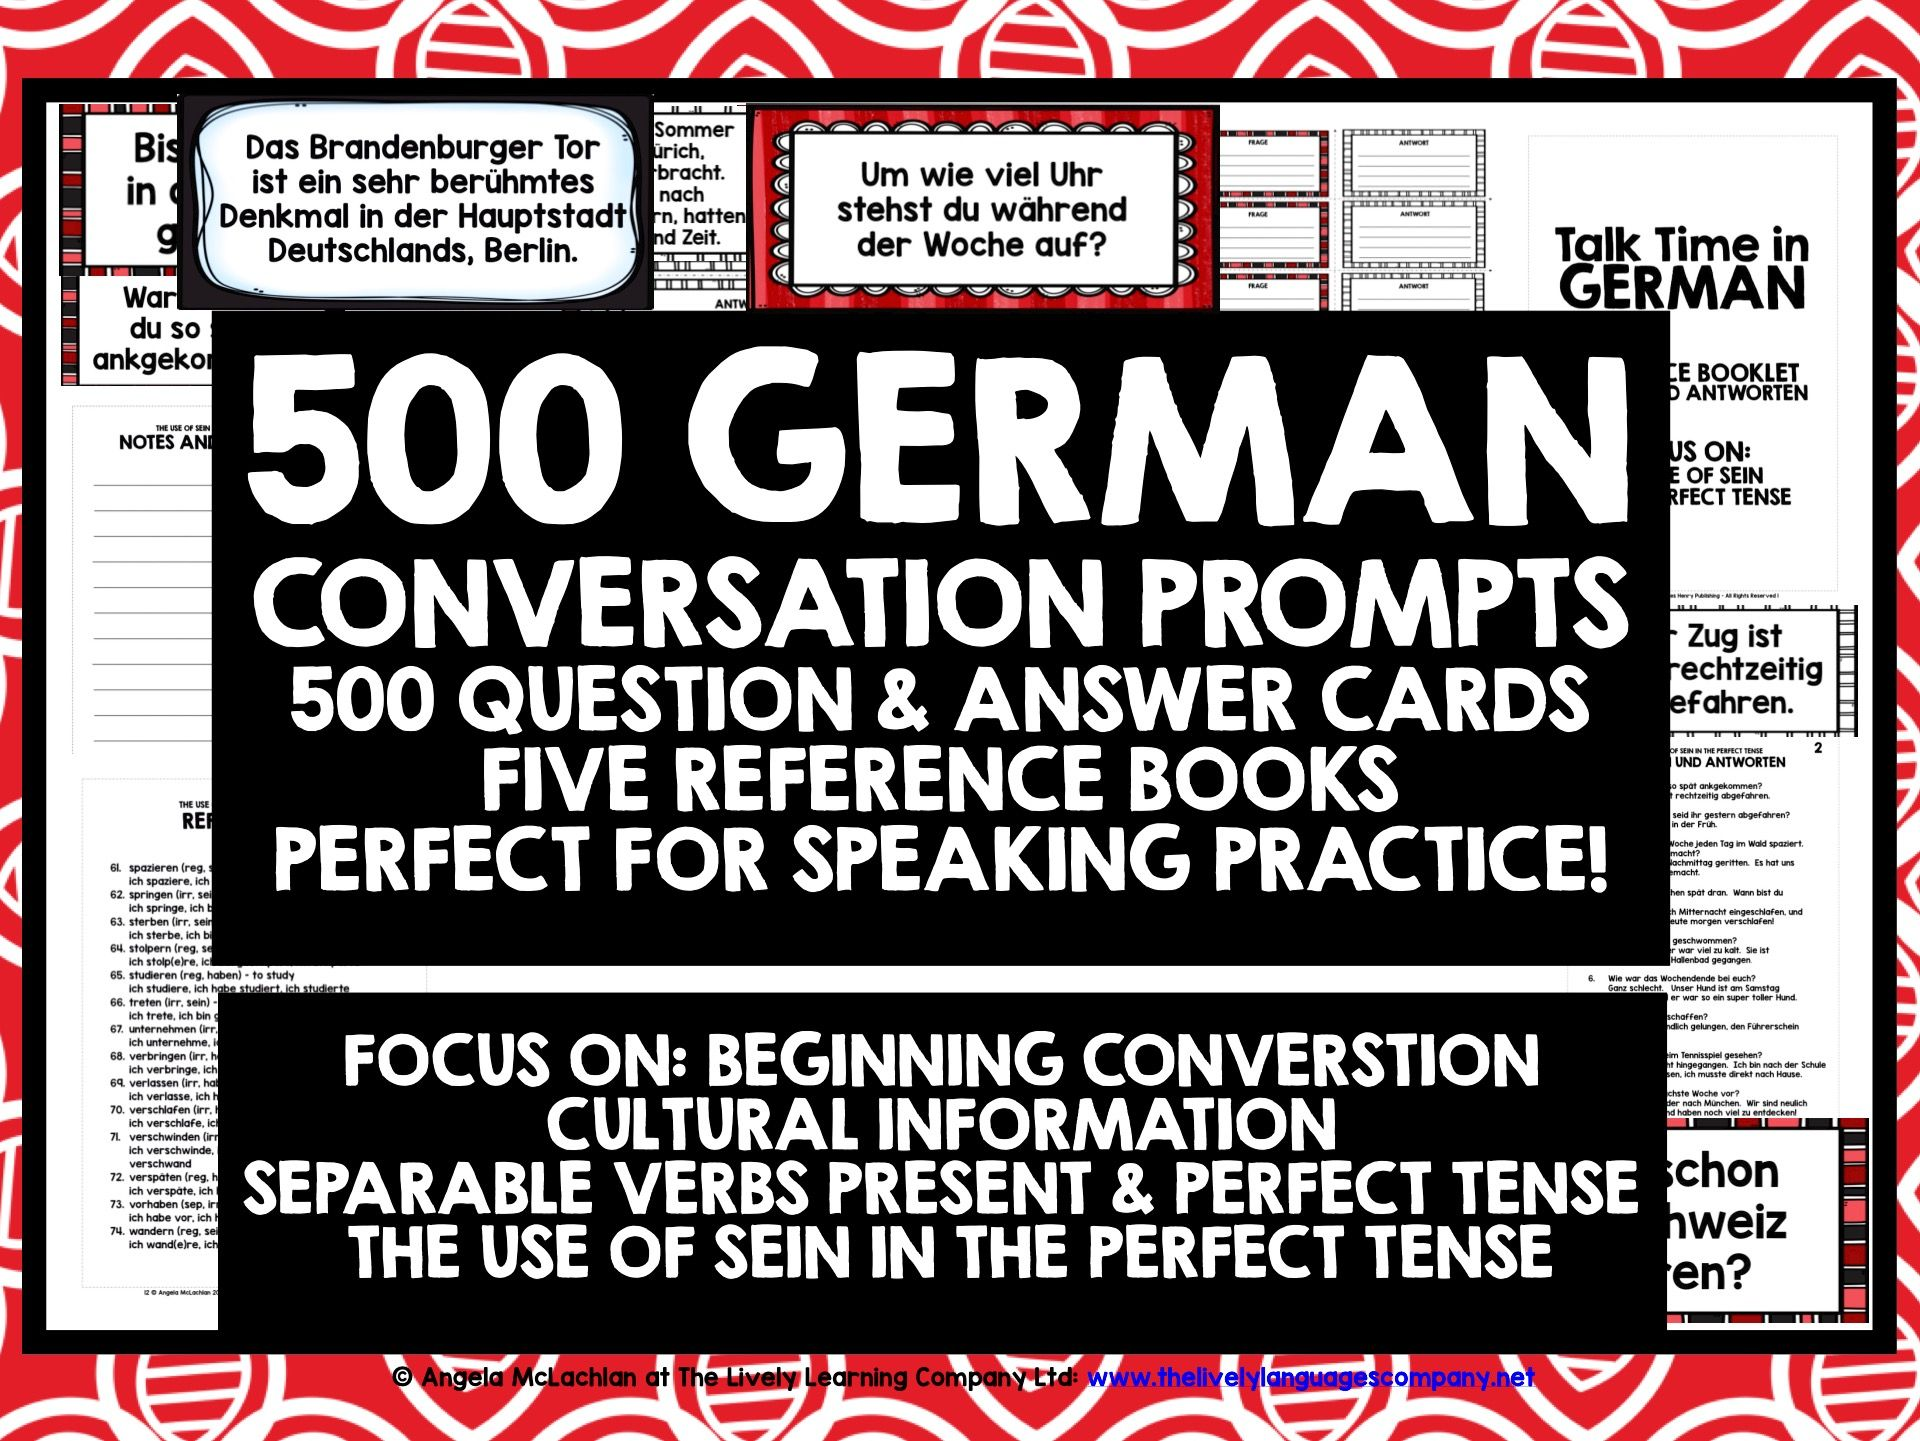 GERMAN CONVERSATION CARDS 500 QUESTION & ANSWER PROMPTS